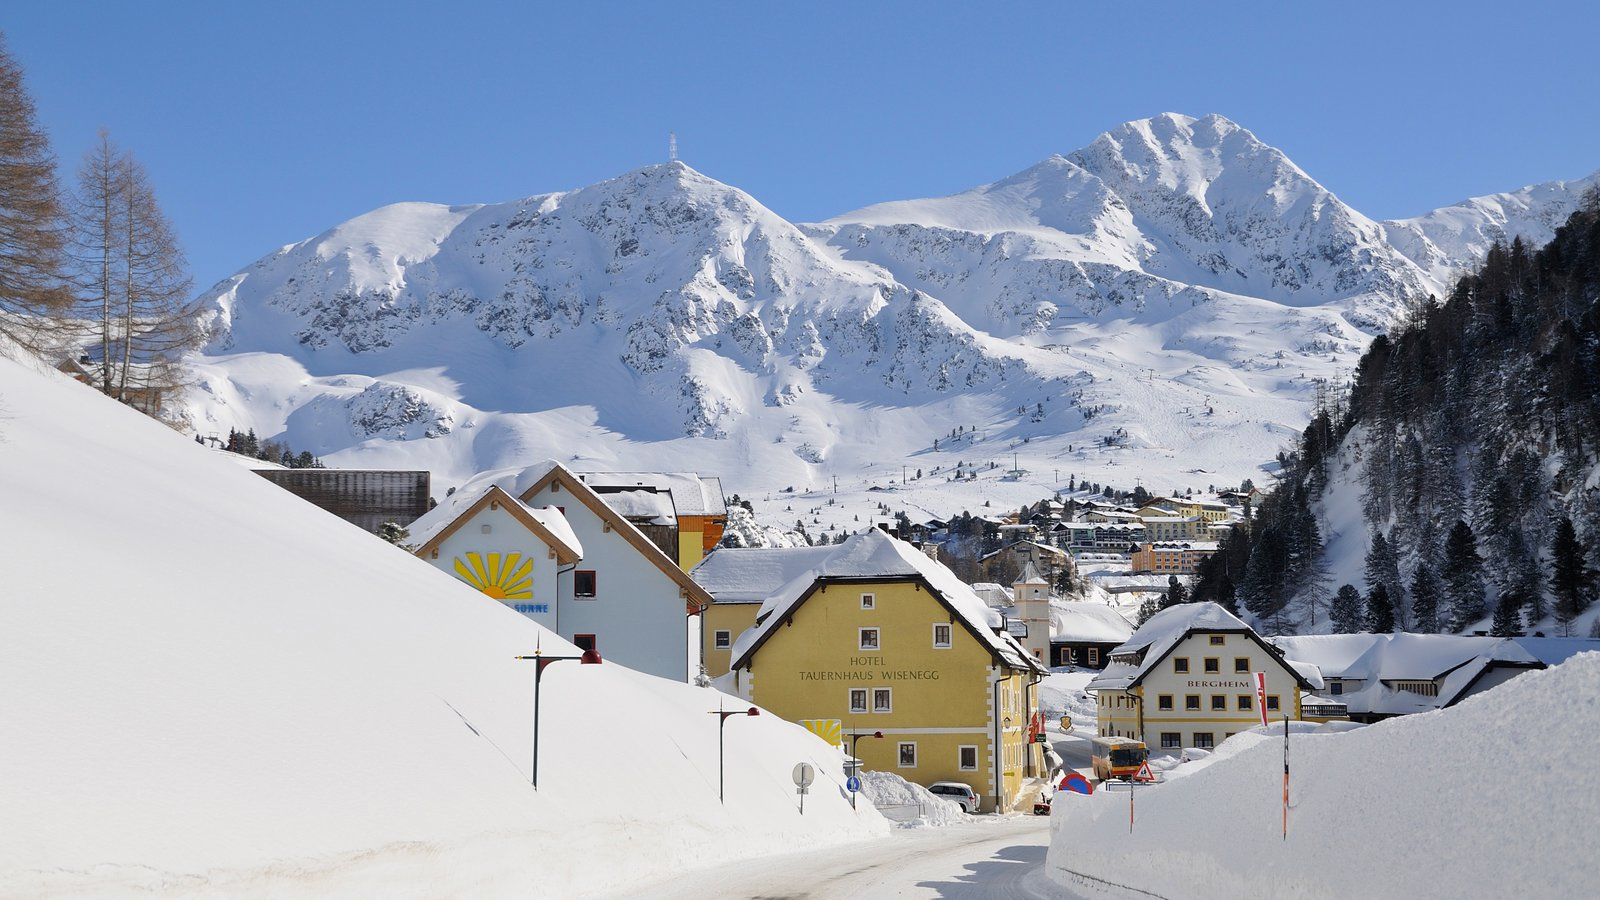 Obertauern featuring mountains, a small town or village and snow